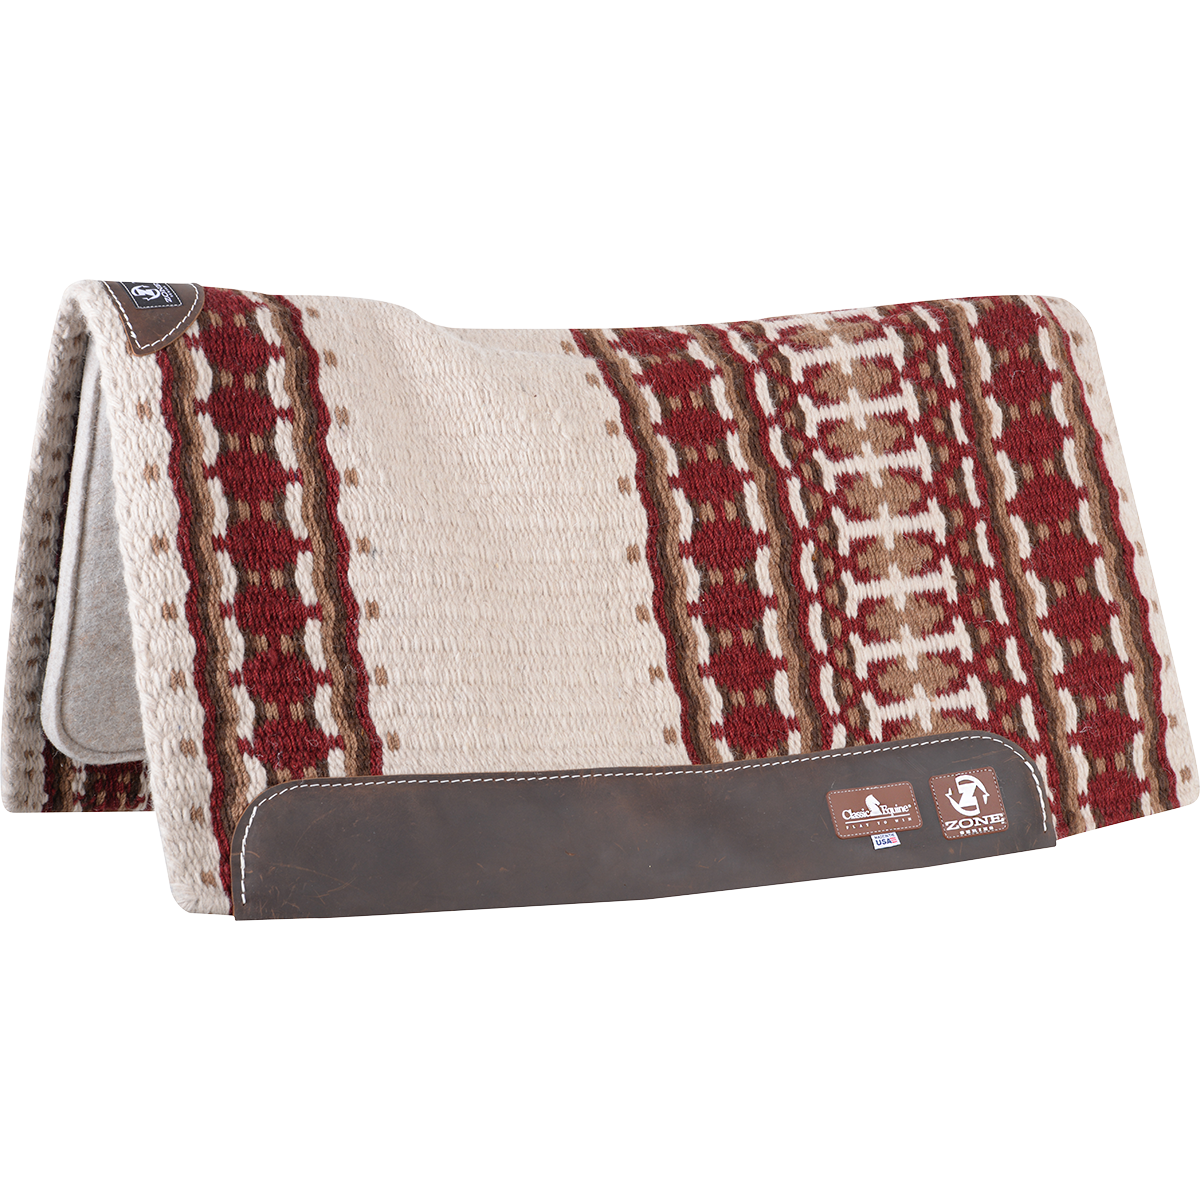 "Classic Equine Zone Wool Top Zoombang Pad 34x38"" - 3/4"" (2019 - Ivory/Crimson)"